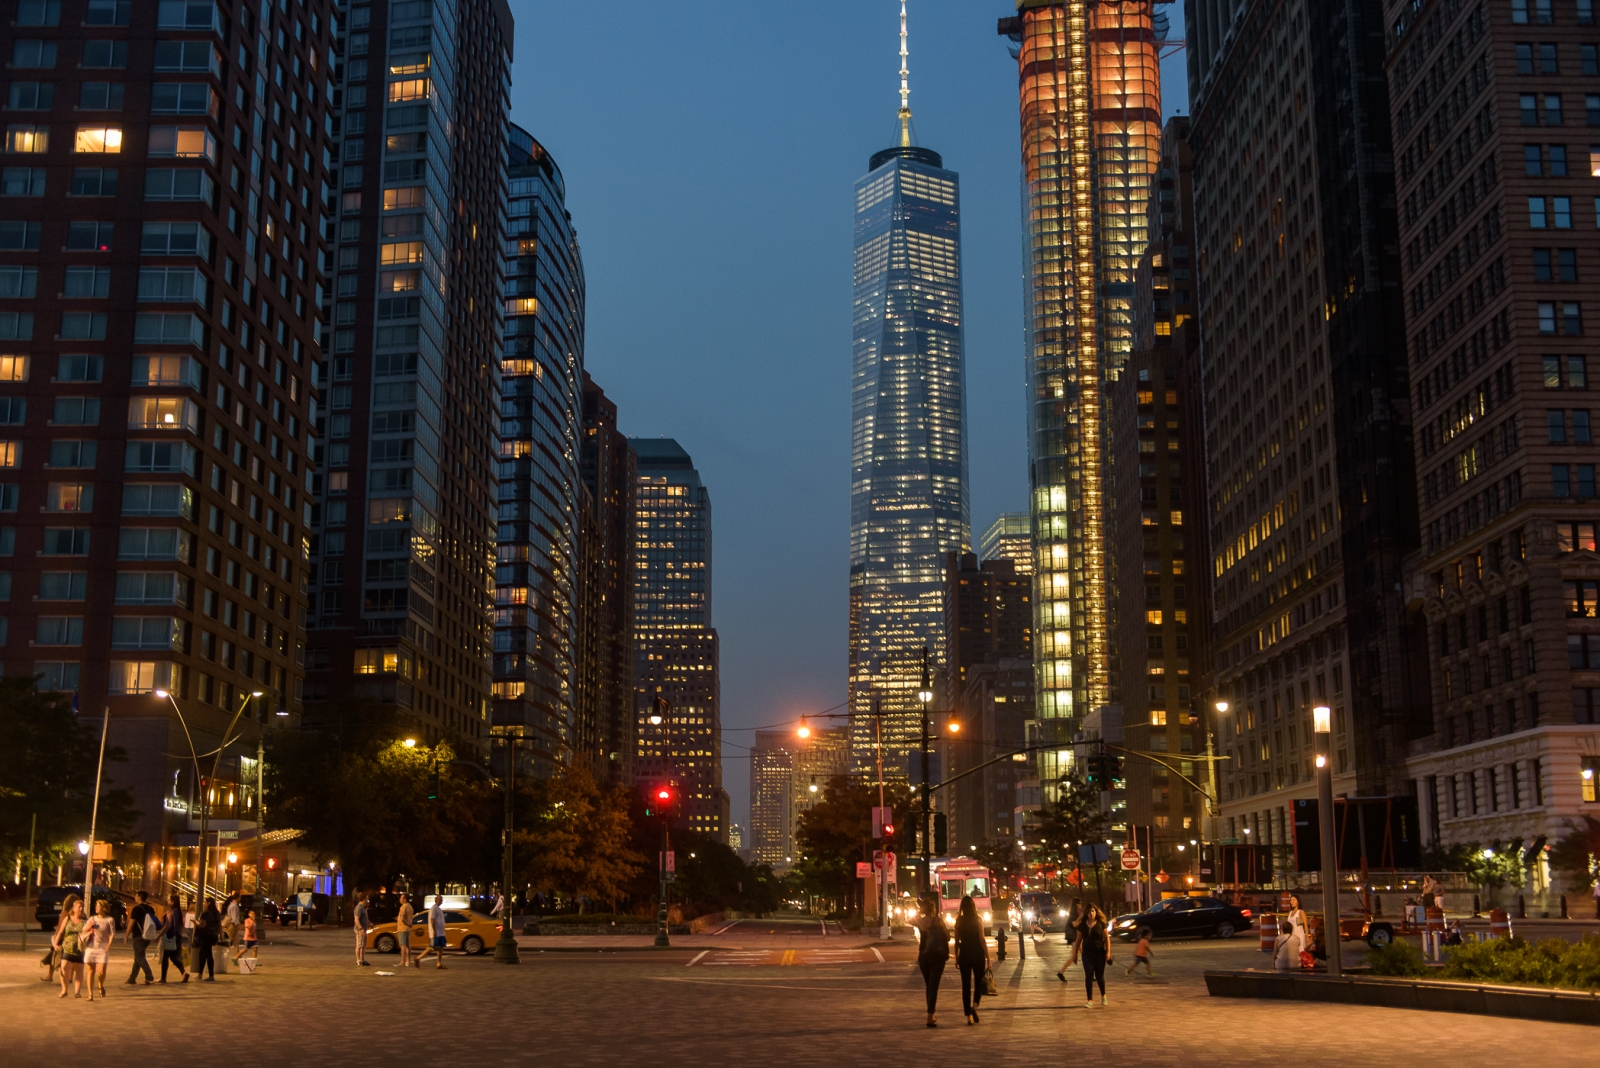 Image of FiDi / Battery Park City